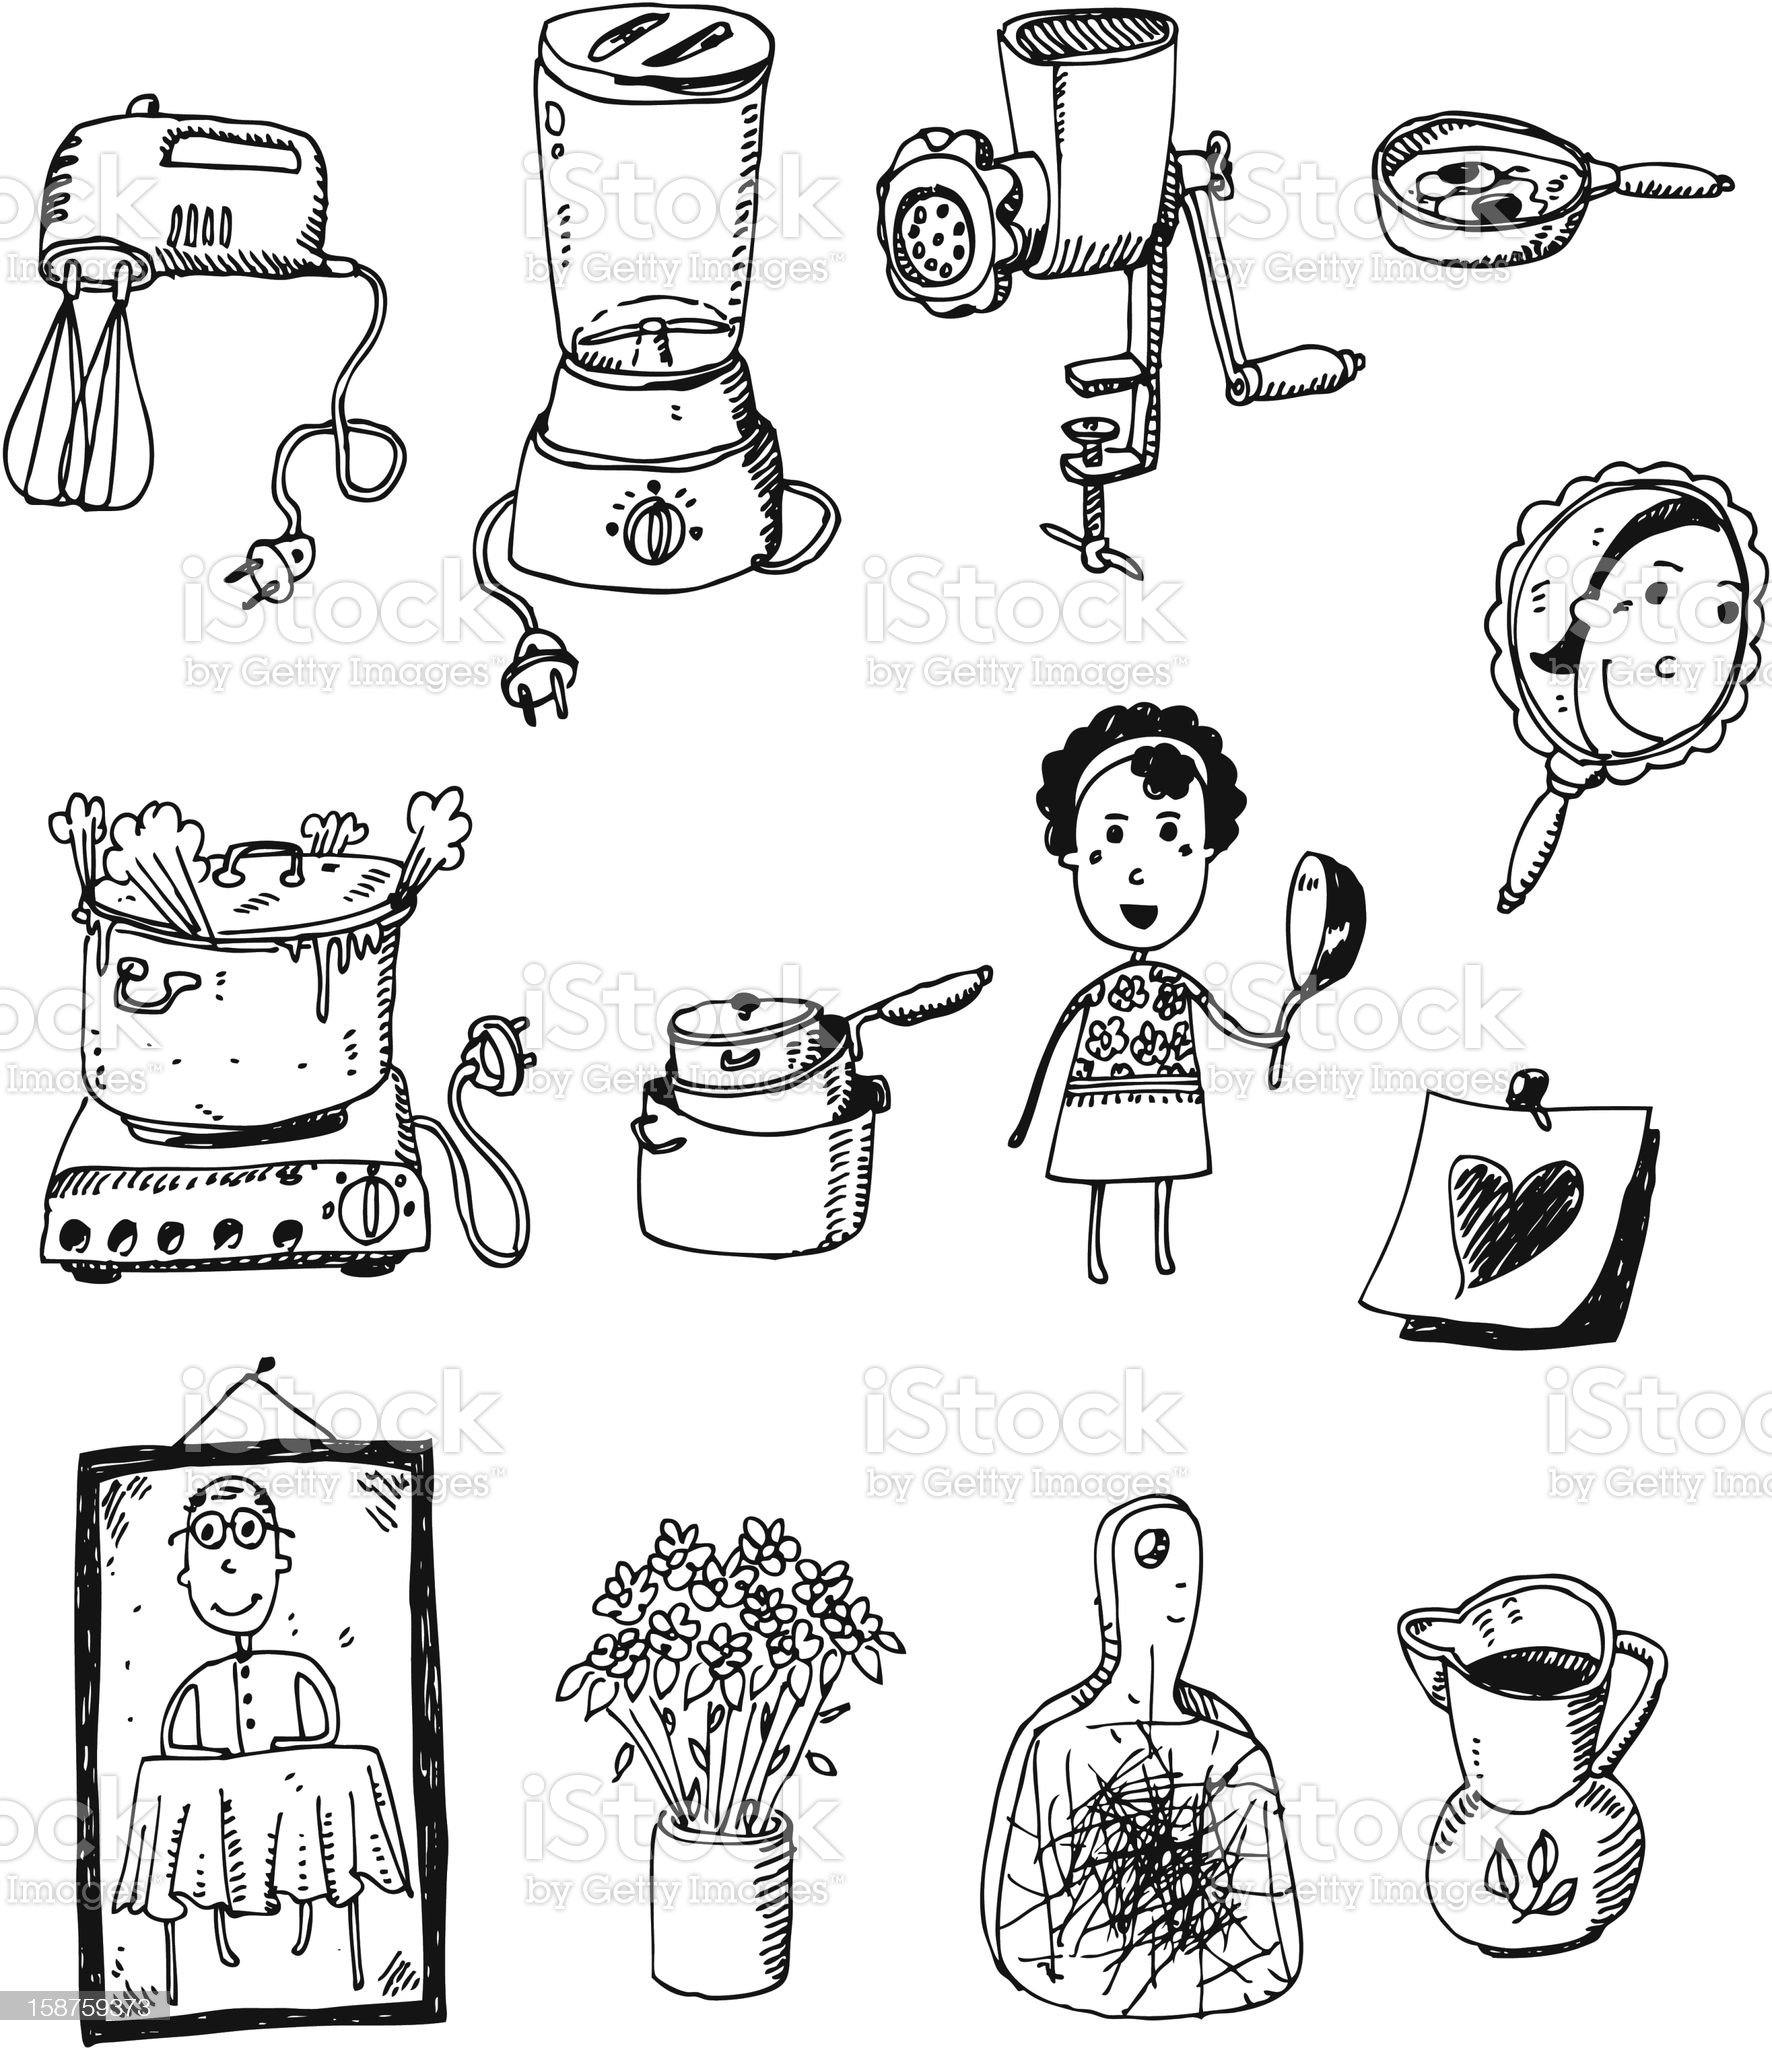 doodle set - kitchen royalty-free stock vector art